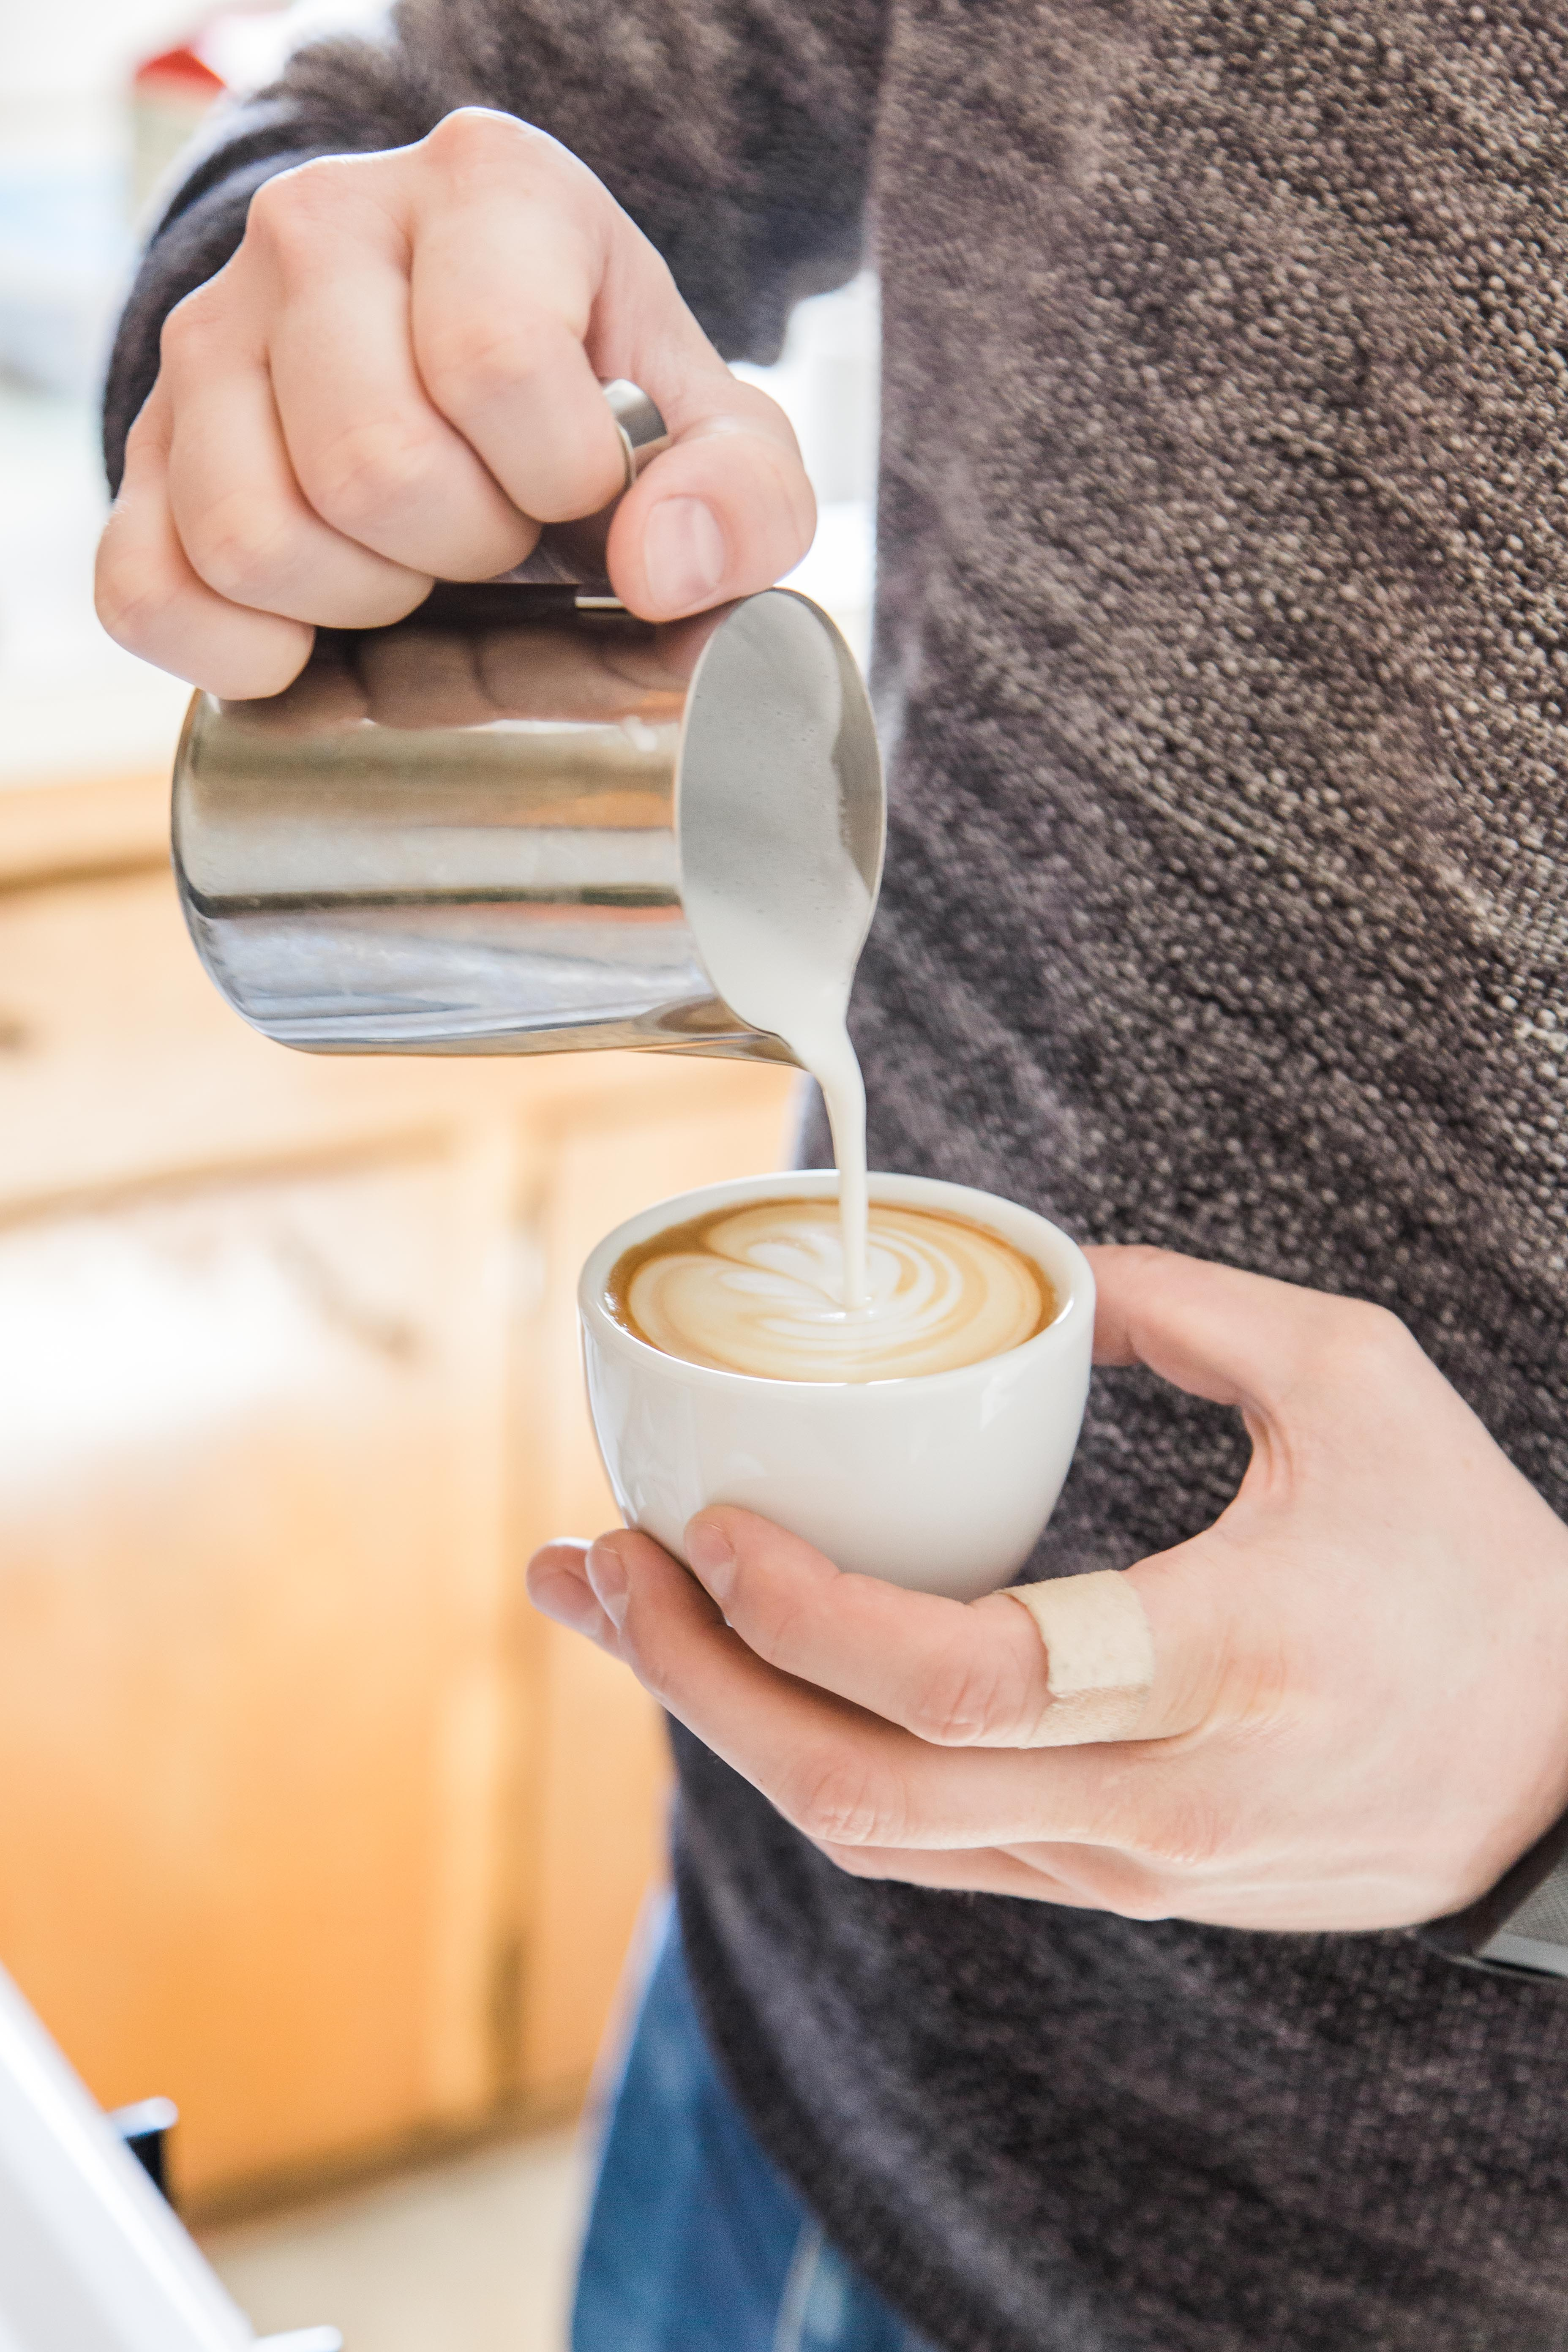 Practice those rosettas and tulips at home, the Bellman is capable of creating great microfoamed milk for latte art.